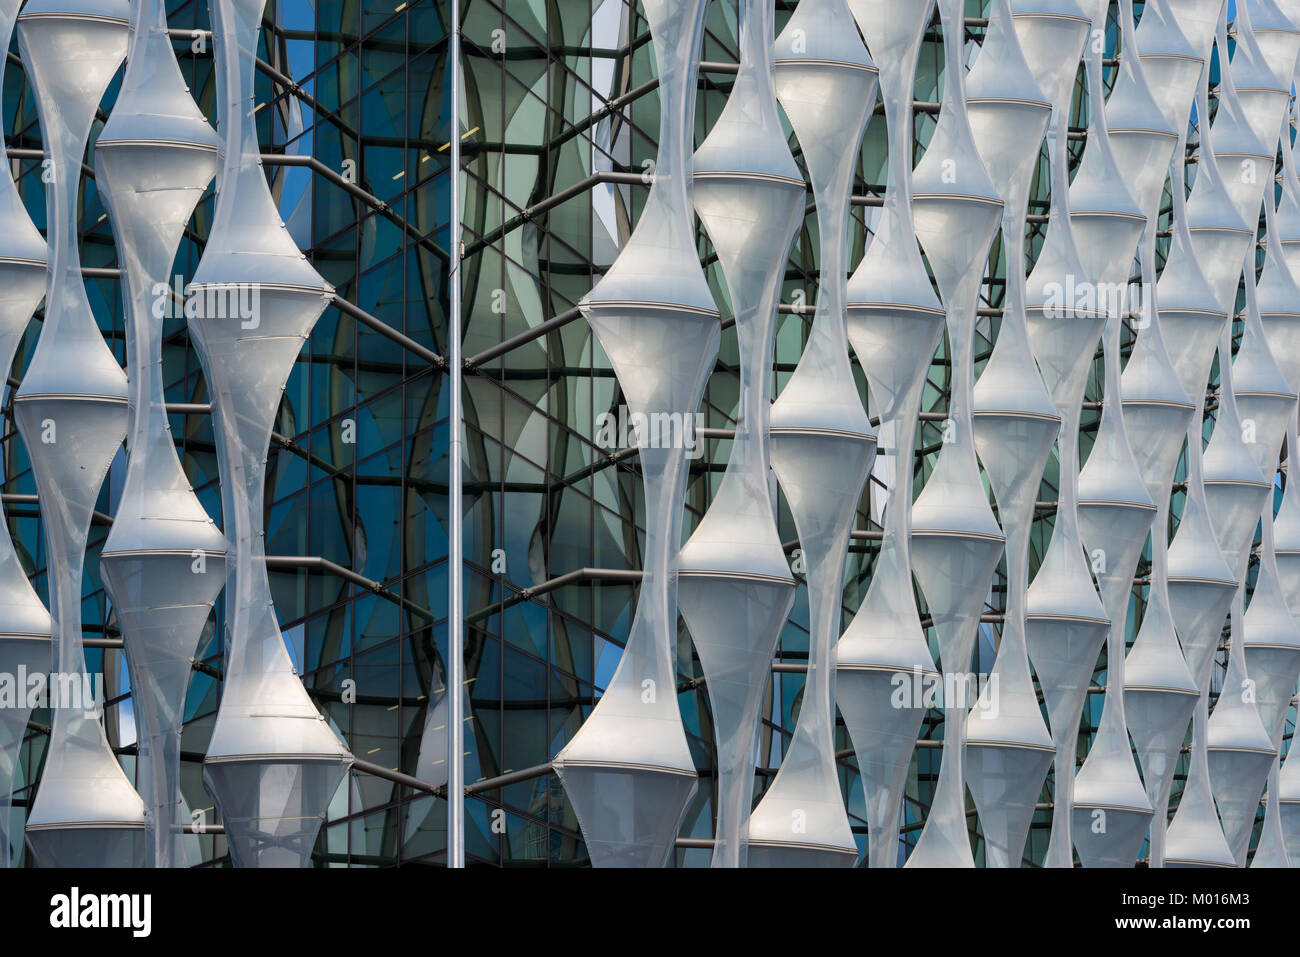 The exterior of the new US Embassy in Nine Elms, London, United Kingdom - Stock Image